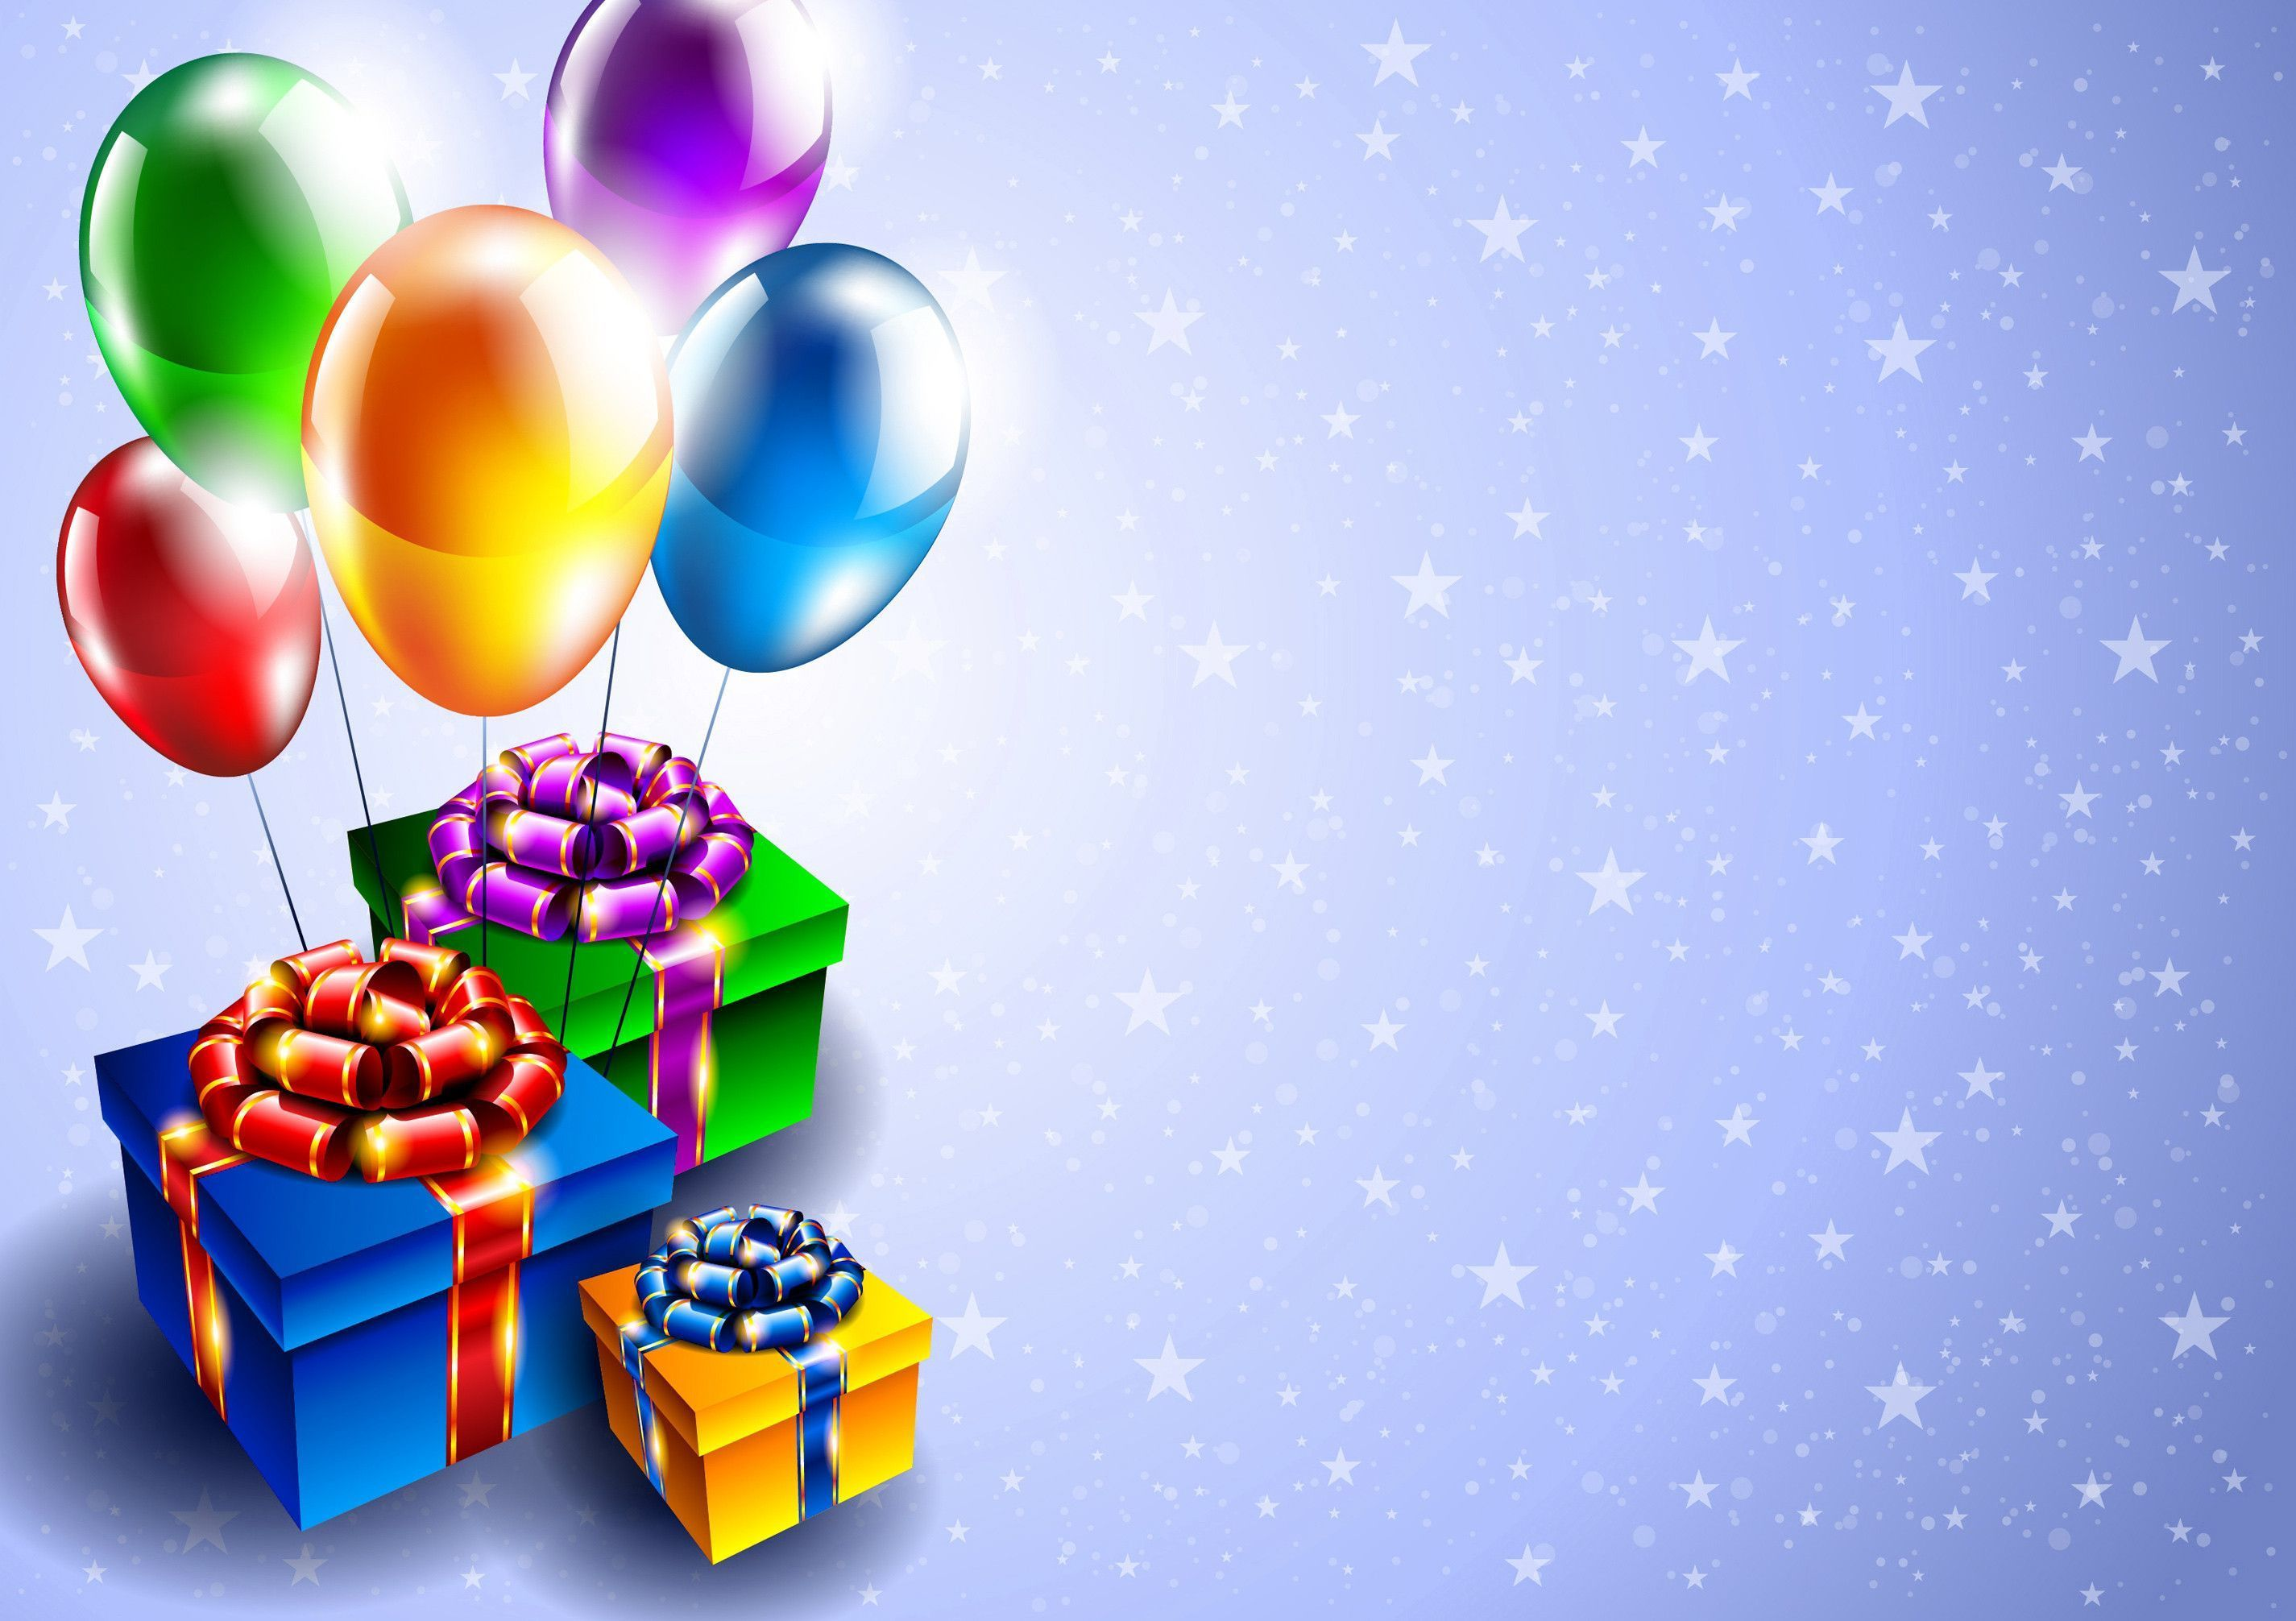 Download Birthday Background Images HD The Quotes Land 2850x2012